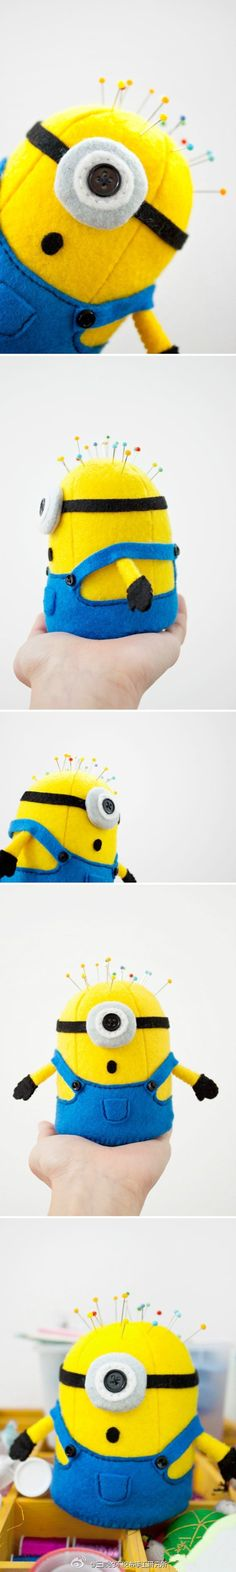 Minion pincushion! @Katie Hrubec Hrubec Hrubec Lee  ... oh lord do I COVET this!!!